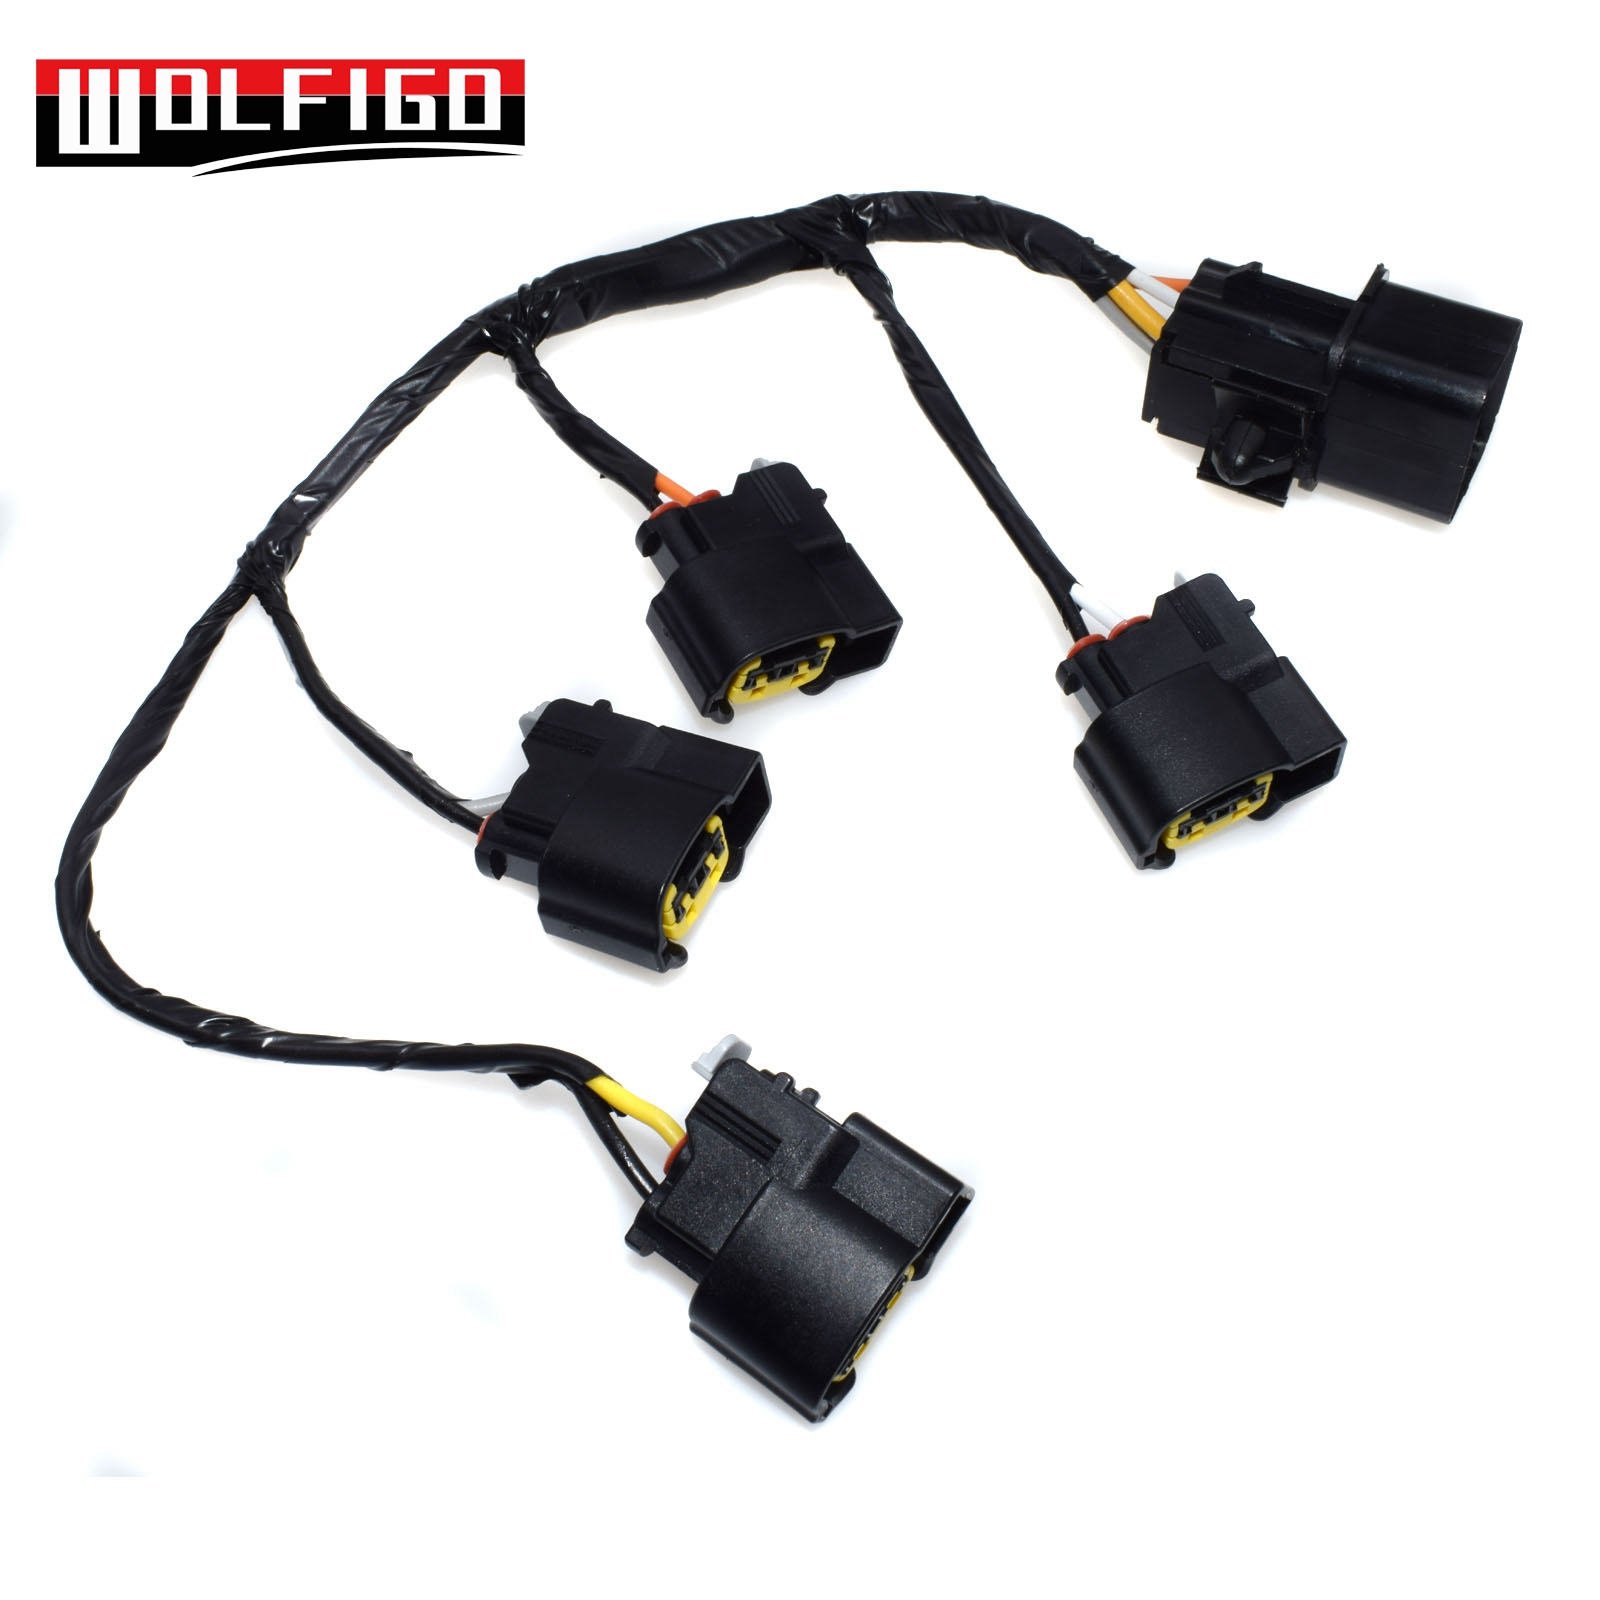 hight resolution of wolfigo new ignition coil wire harness for hyundai kia veloster rio 1 6l 27350 2b000 27350 2b000 273502b000